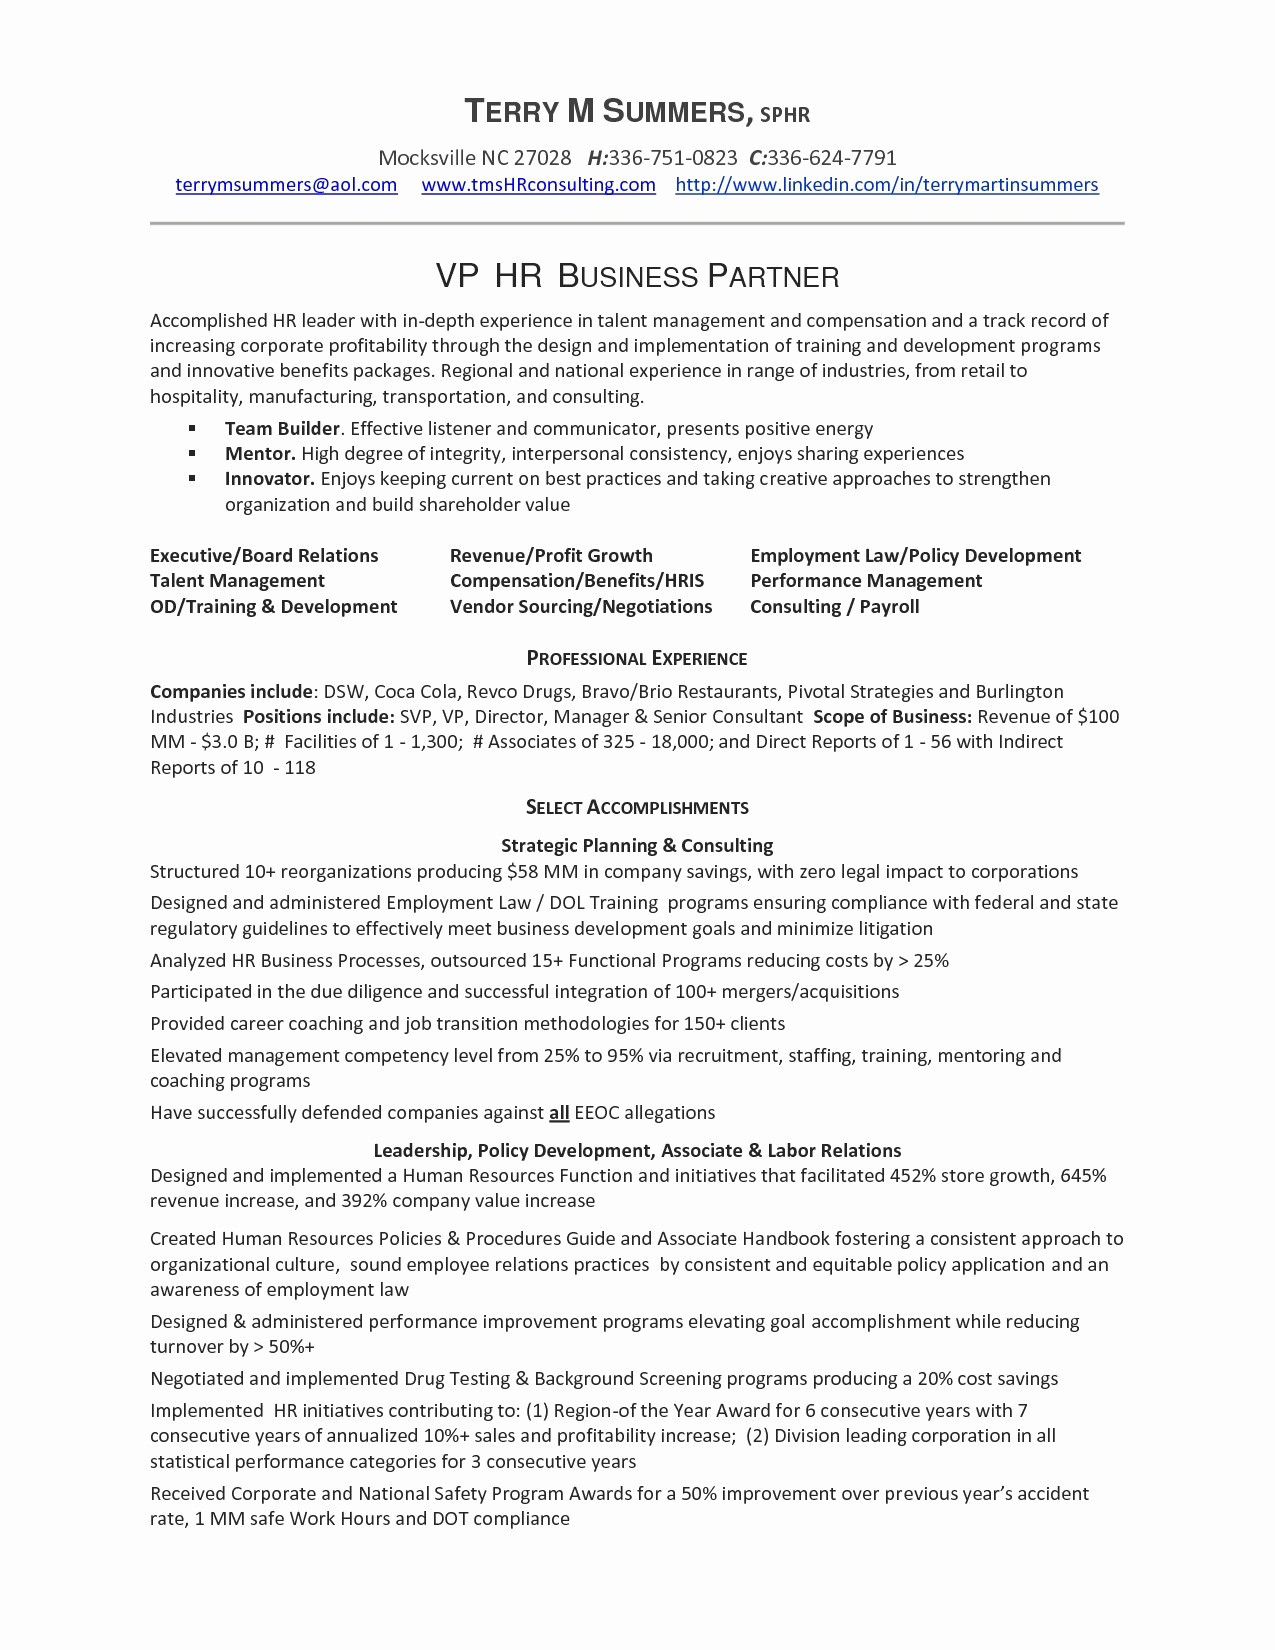 Business Plan Cover Letter Template - Reach Certificate Pliance Sample Fresh Business Plan Cover